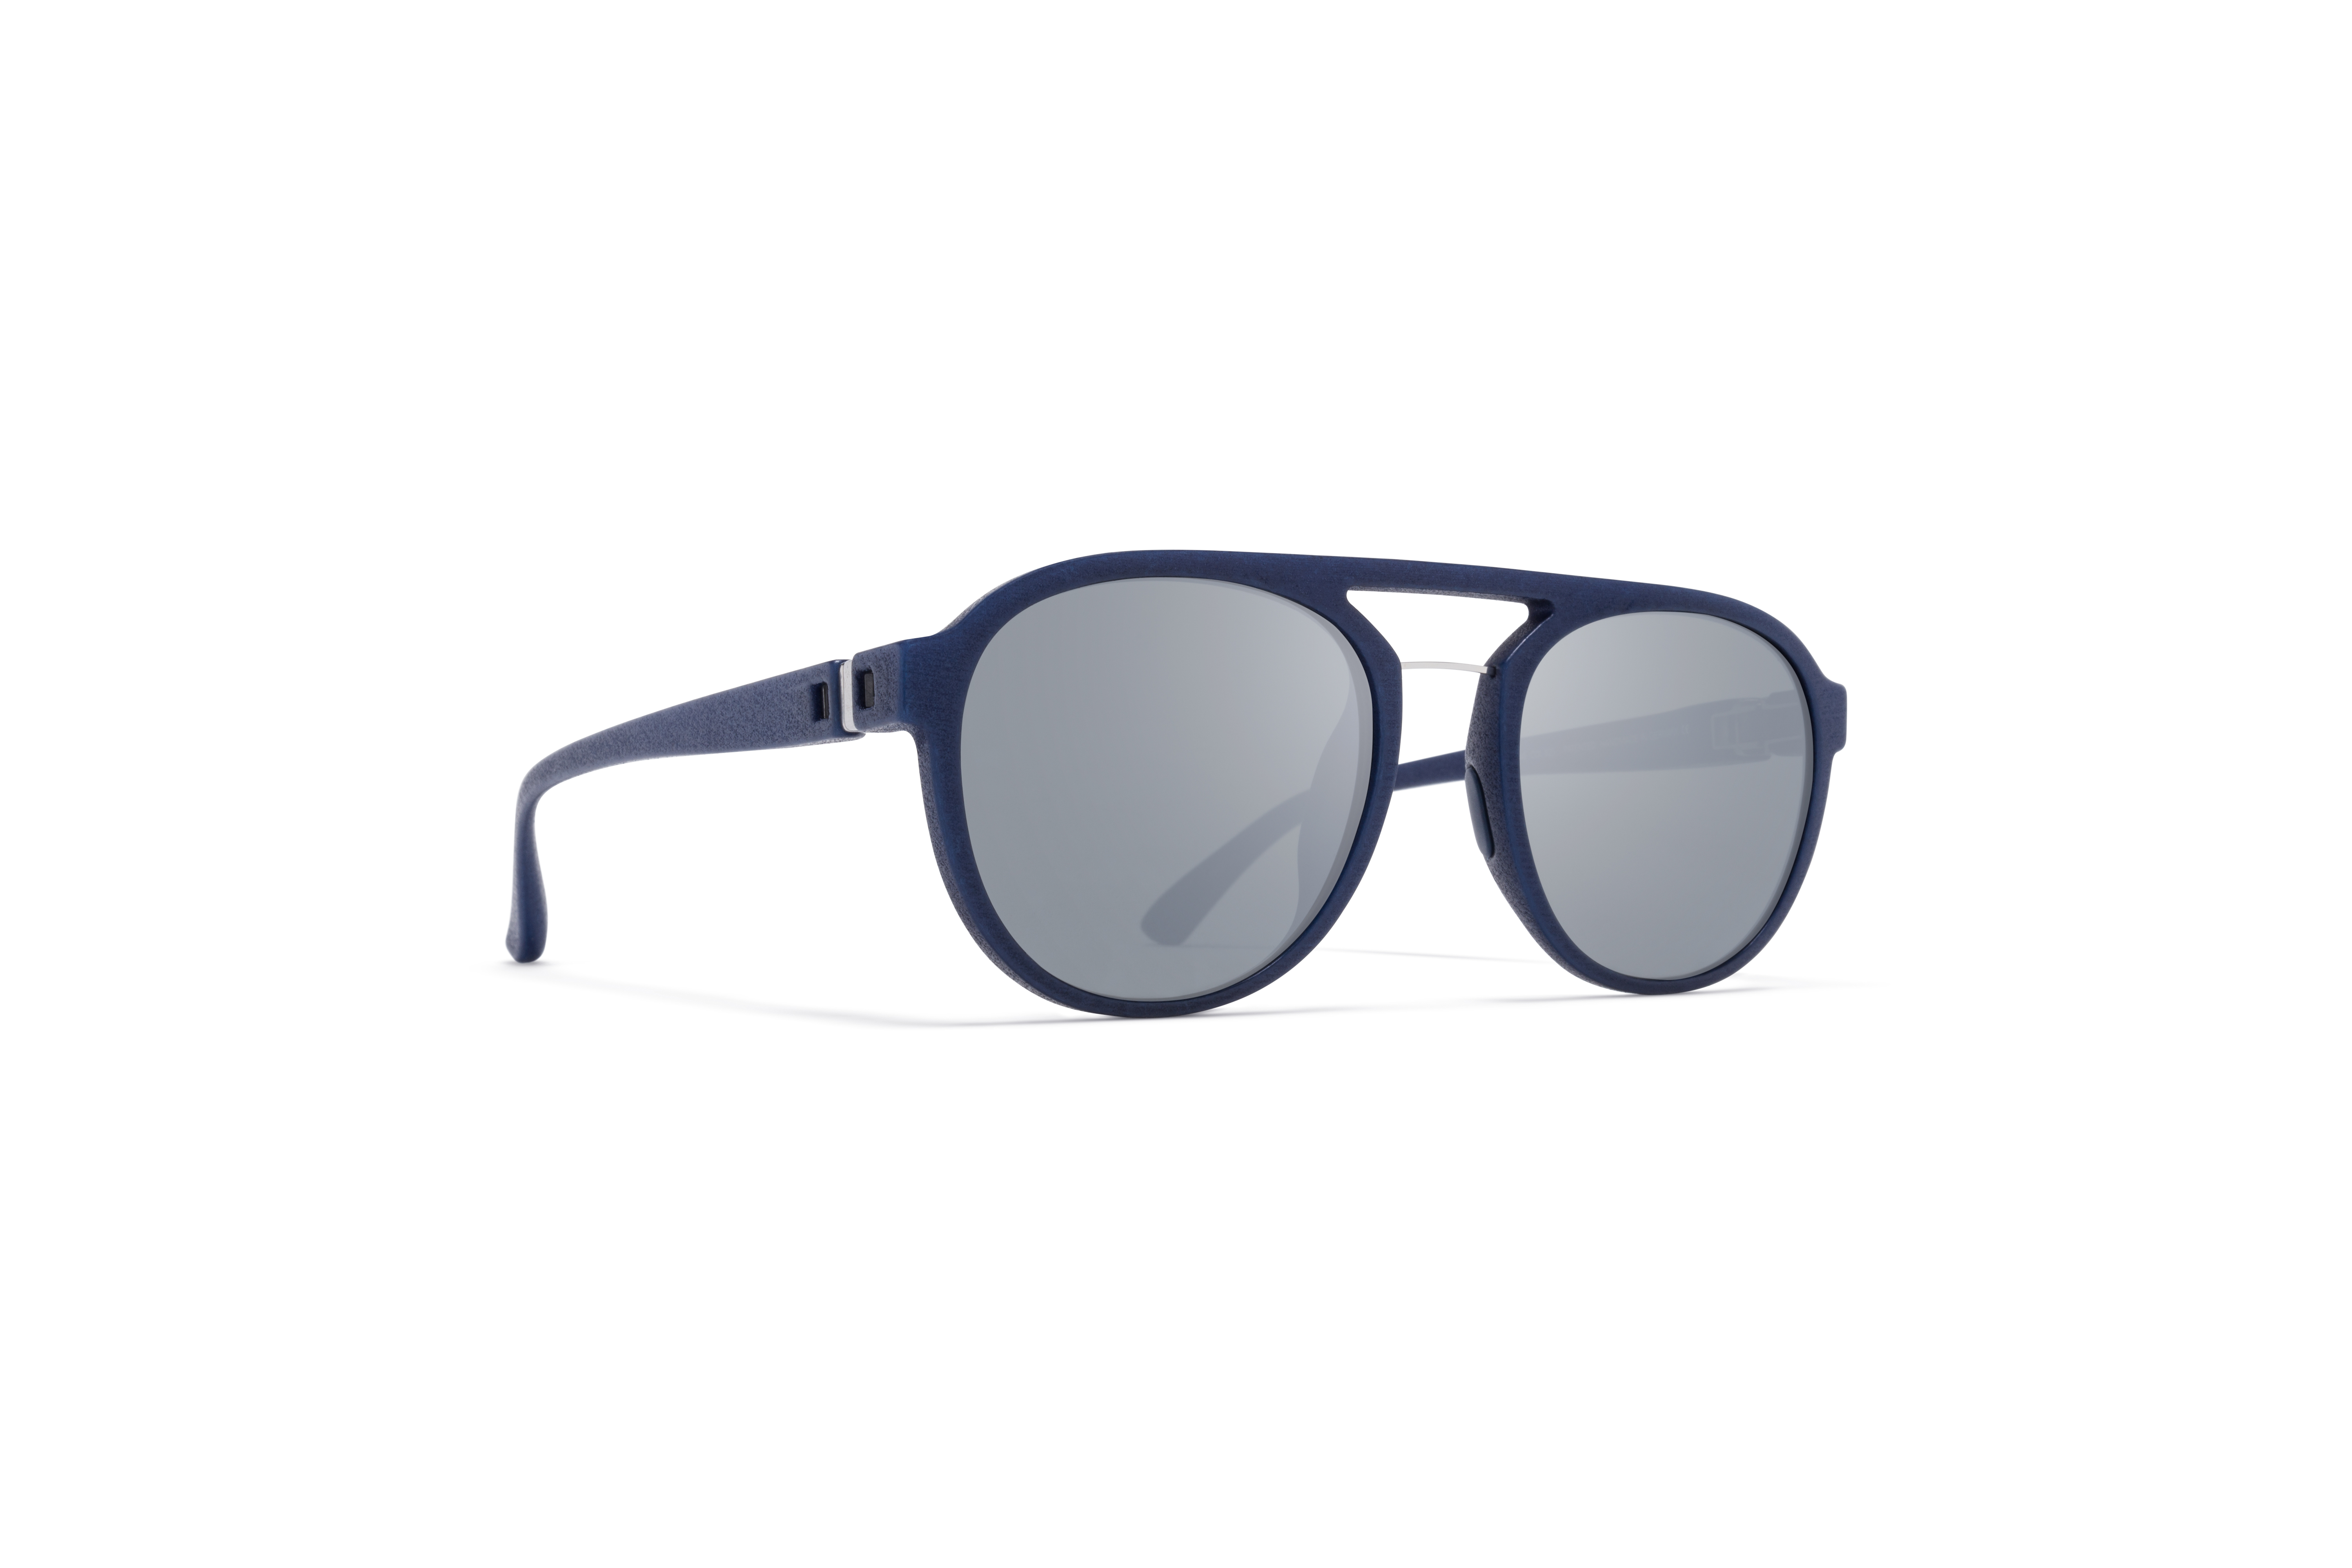 MYKITA Mylon Sun Sting Mmt4 Navy Blue Silver Mesh Light Silver Flash